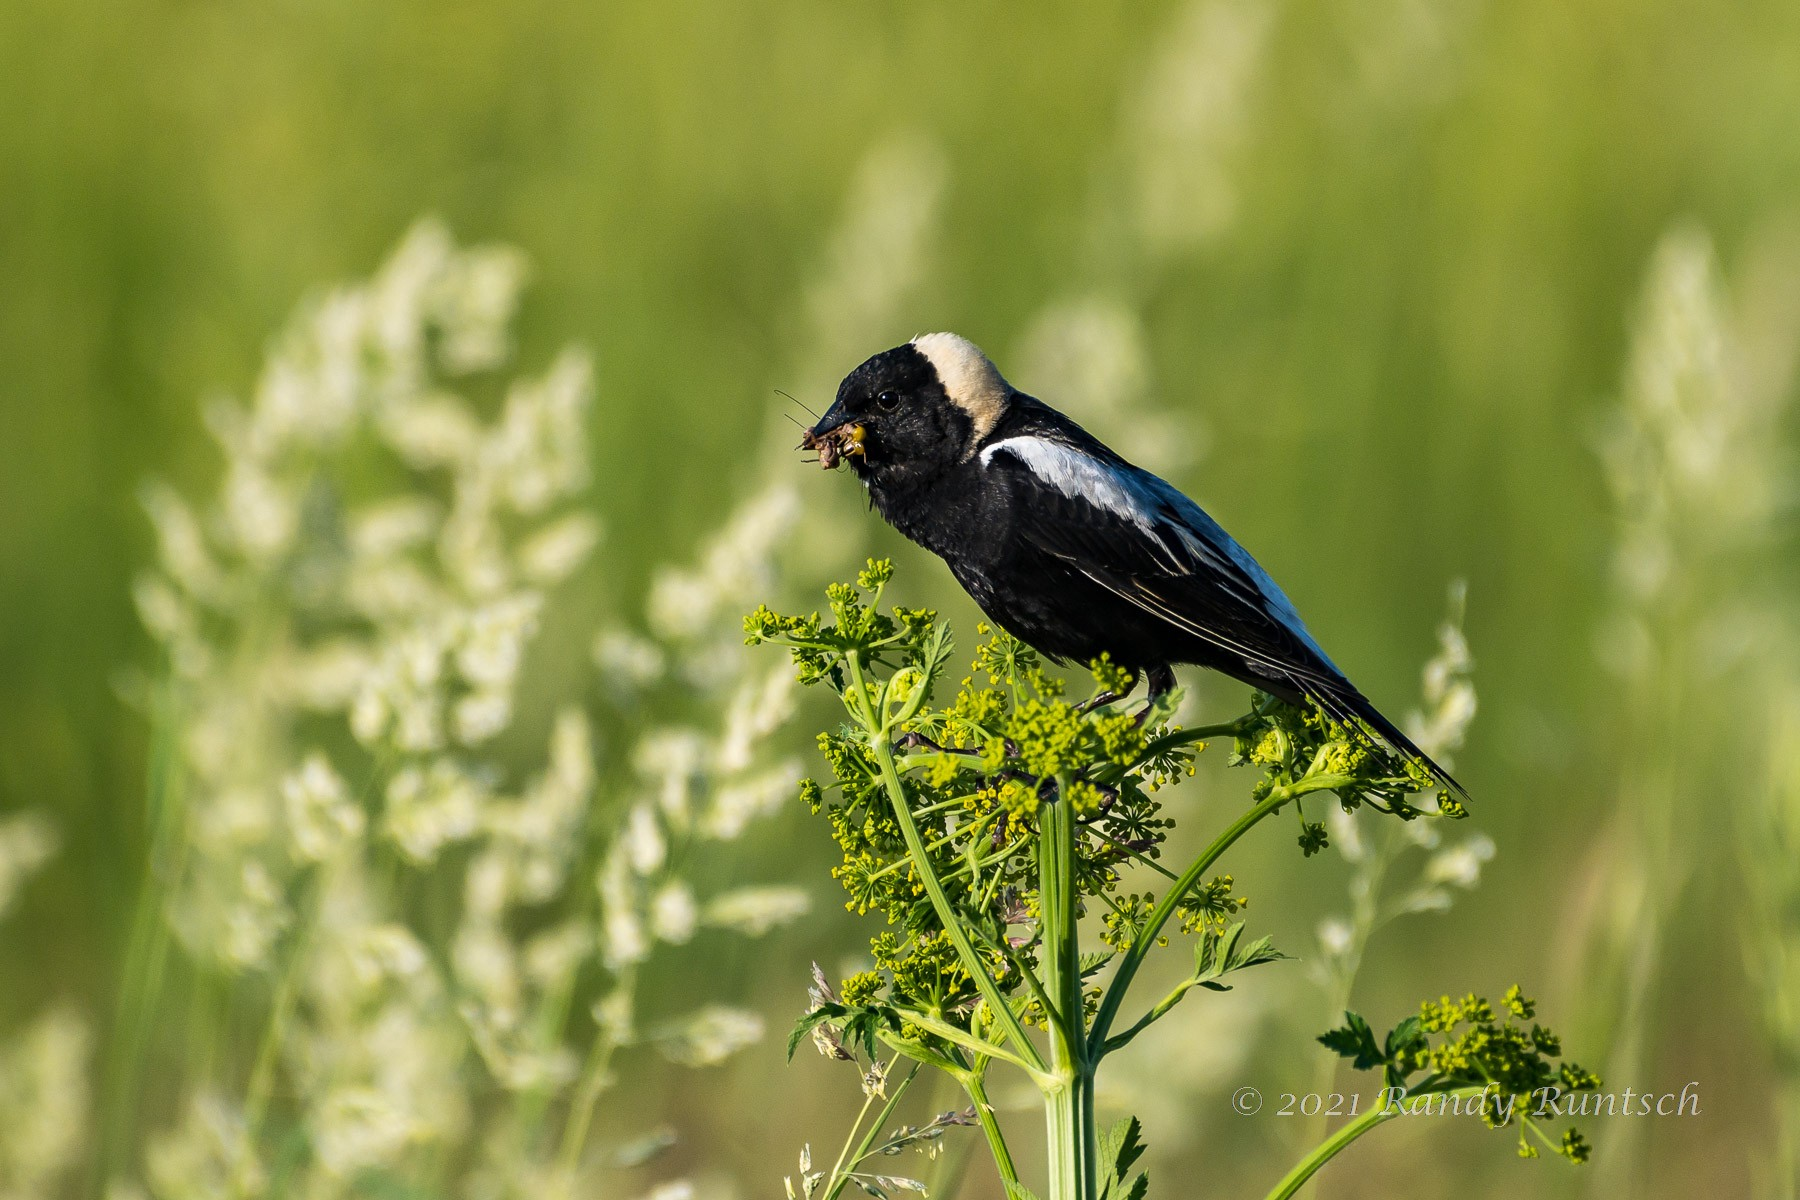 Bobolink with a mouthful of insects. © 2021 Randy Runtsch